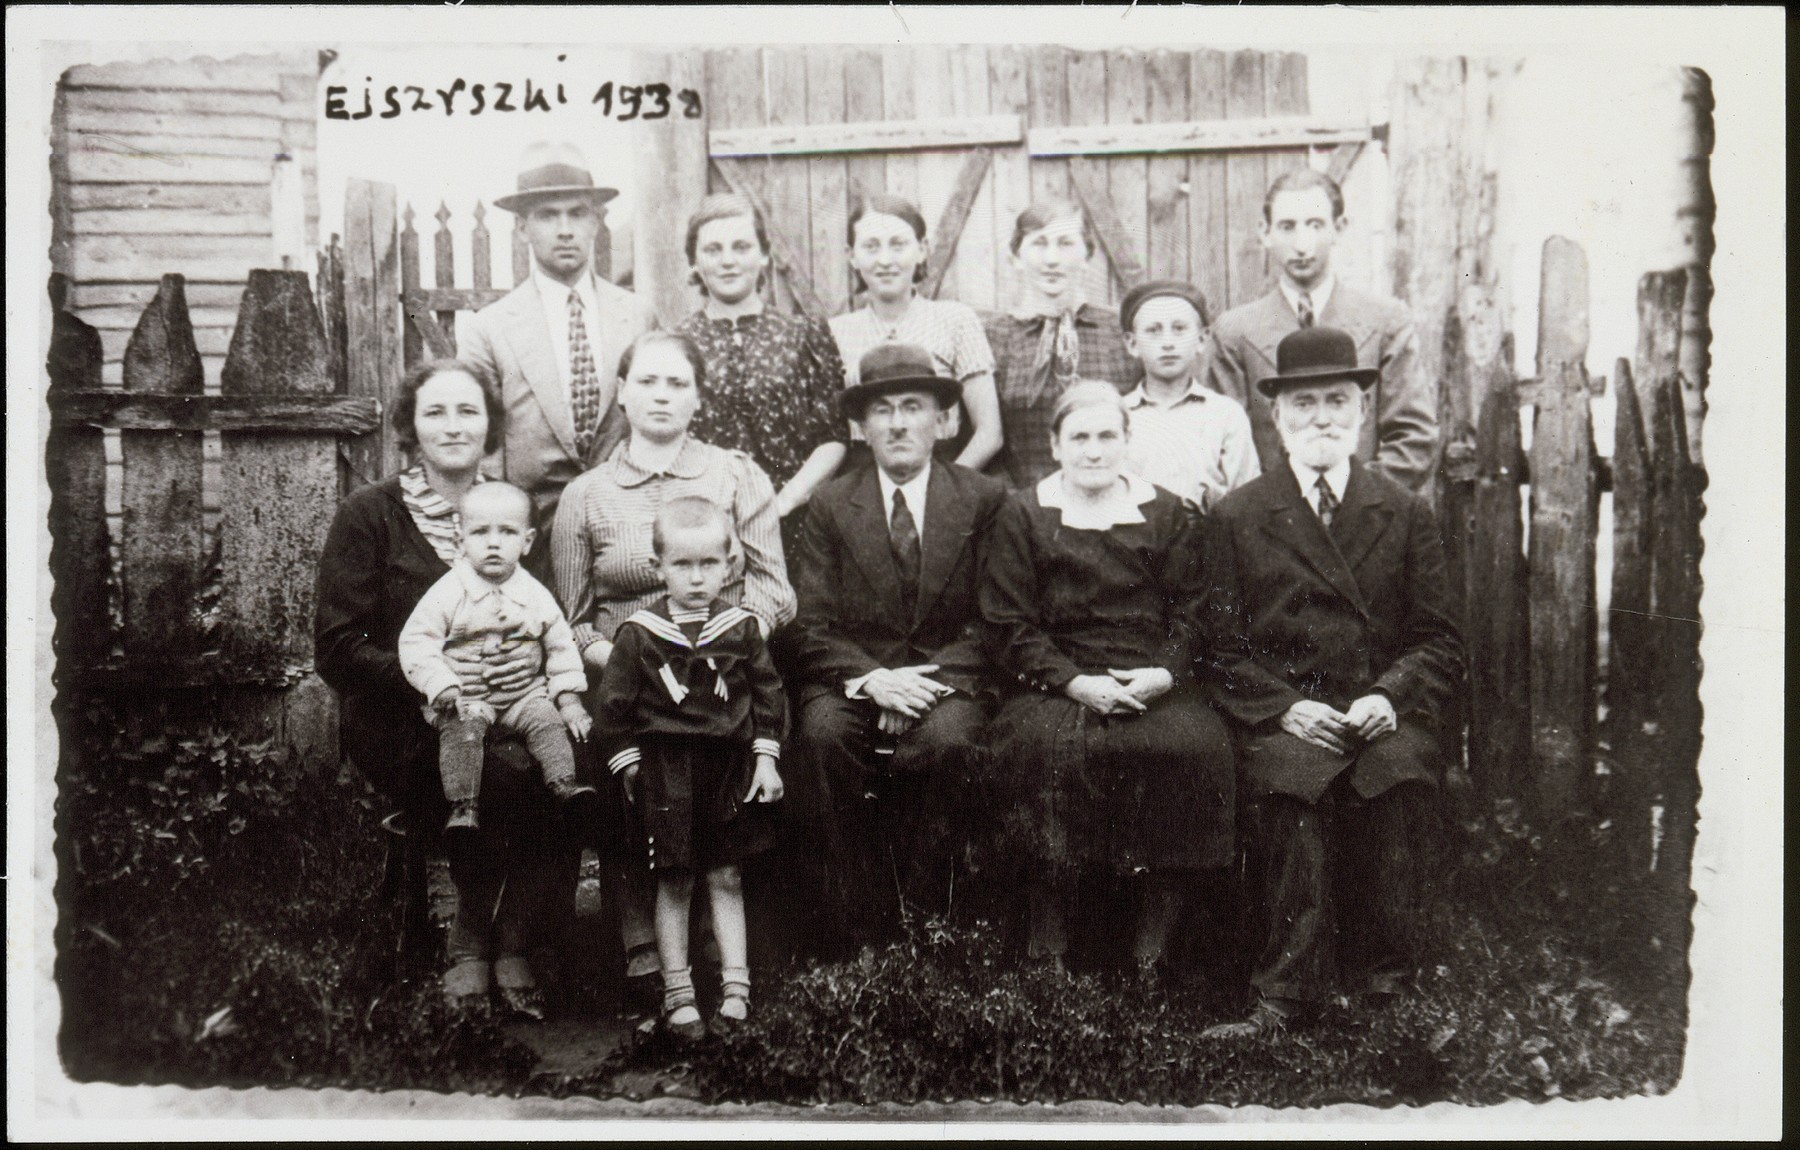 A family photo in honor of the emigration of Gittele Rabinowitz.    Standing (right to left) Moshe-David Katz, his mother Alte (the Shtetl photographer and pharmacist), his sister Shoshana, Gittele Rabinowitz, and Ephraim Karnefski. Seated (right to left) Yankel Resnik, his wife, Yitzhak and Hayya Rabinowitz, Taibl Karnefski nee Resnik, and the two Karnefski sons, Moshe and Zissel, the grandsons of Yaakov Resnik. With the exception of Gittele everybody ele was murdered during the Holocaust.